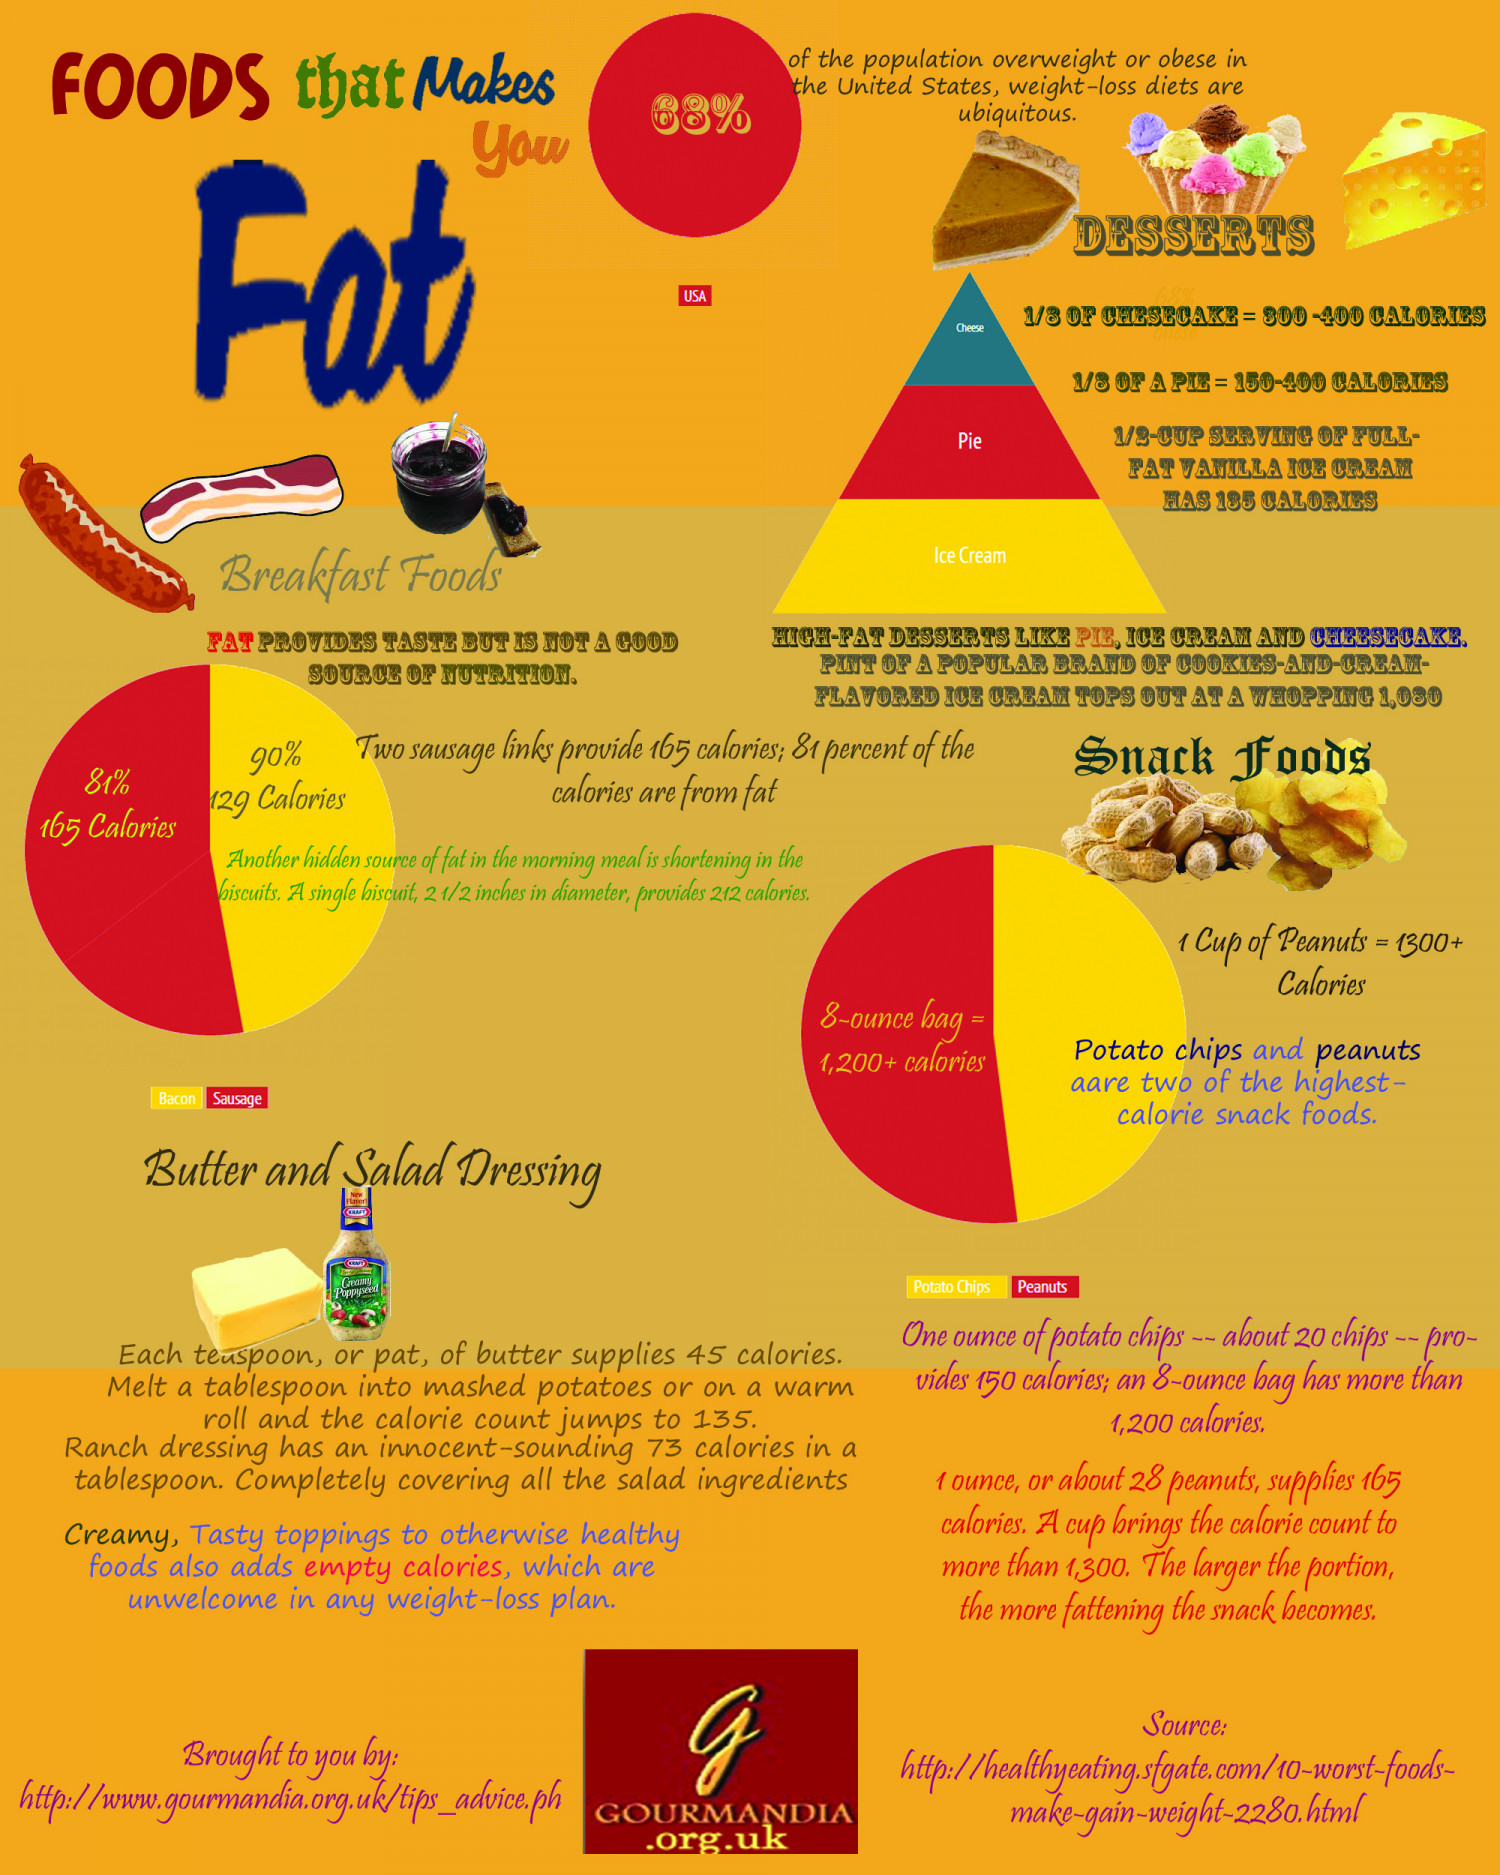 Foods that Make you Fat Infographic